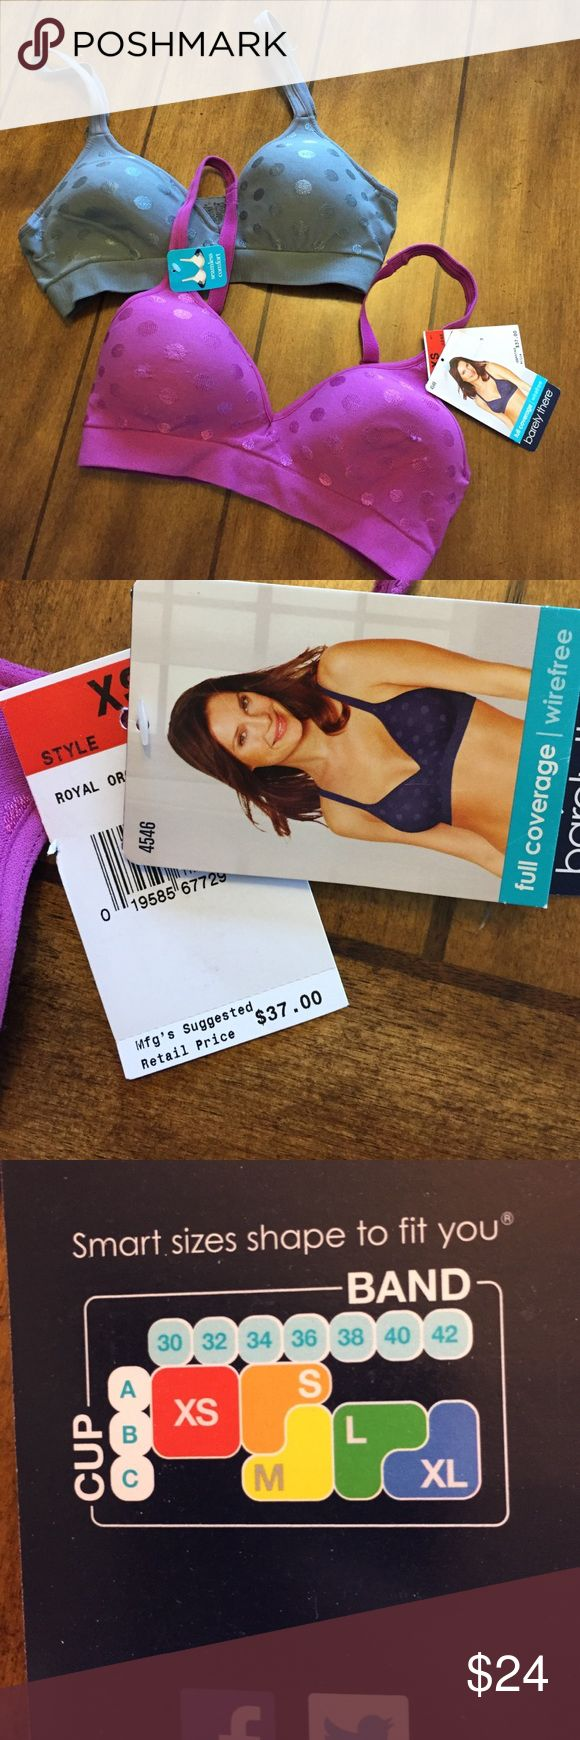 2 brand New barely there wireless comfort bras 2 bras one with tags the other without. Both same size. XS fits A/B 30-32 barely there Intimates & Sleepwear Bras